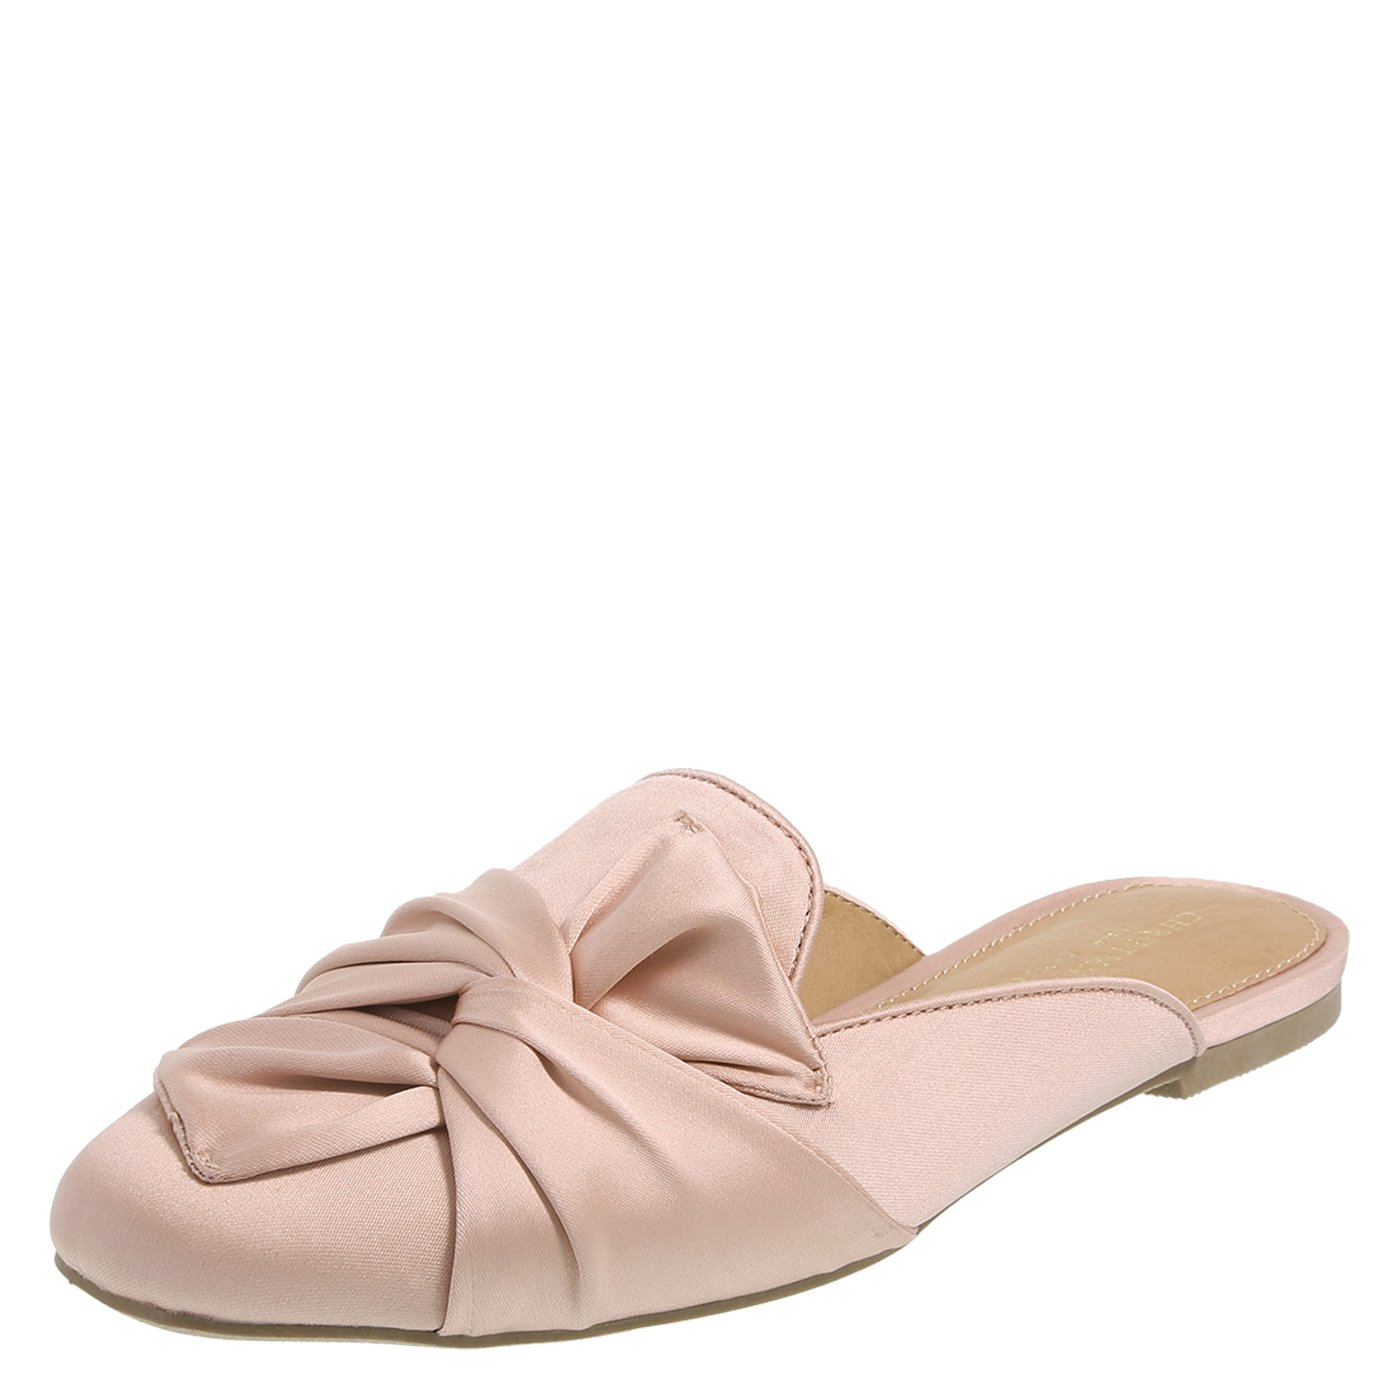 Christian Siriano for Payless Blush Women's Ada Twist Mule 12 Wide